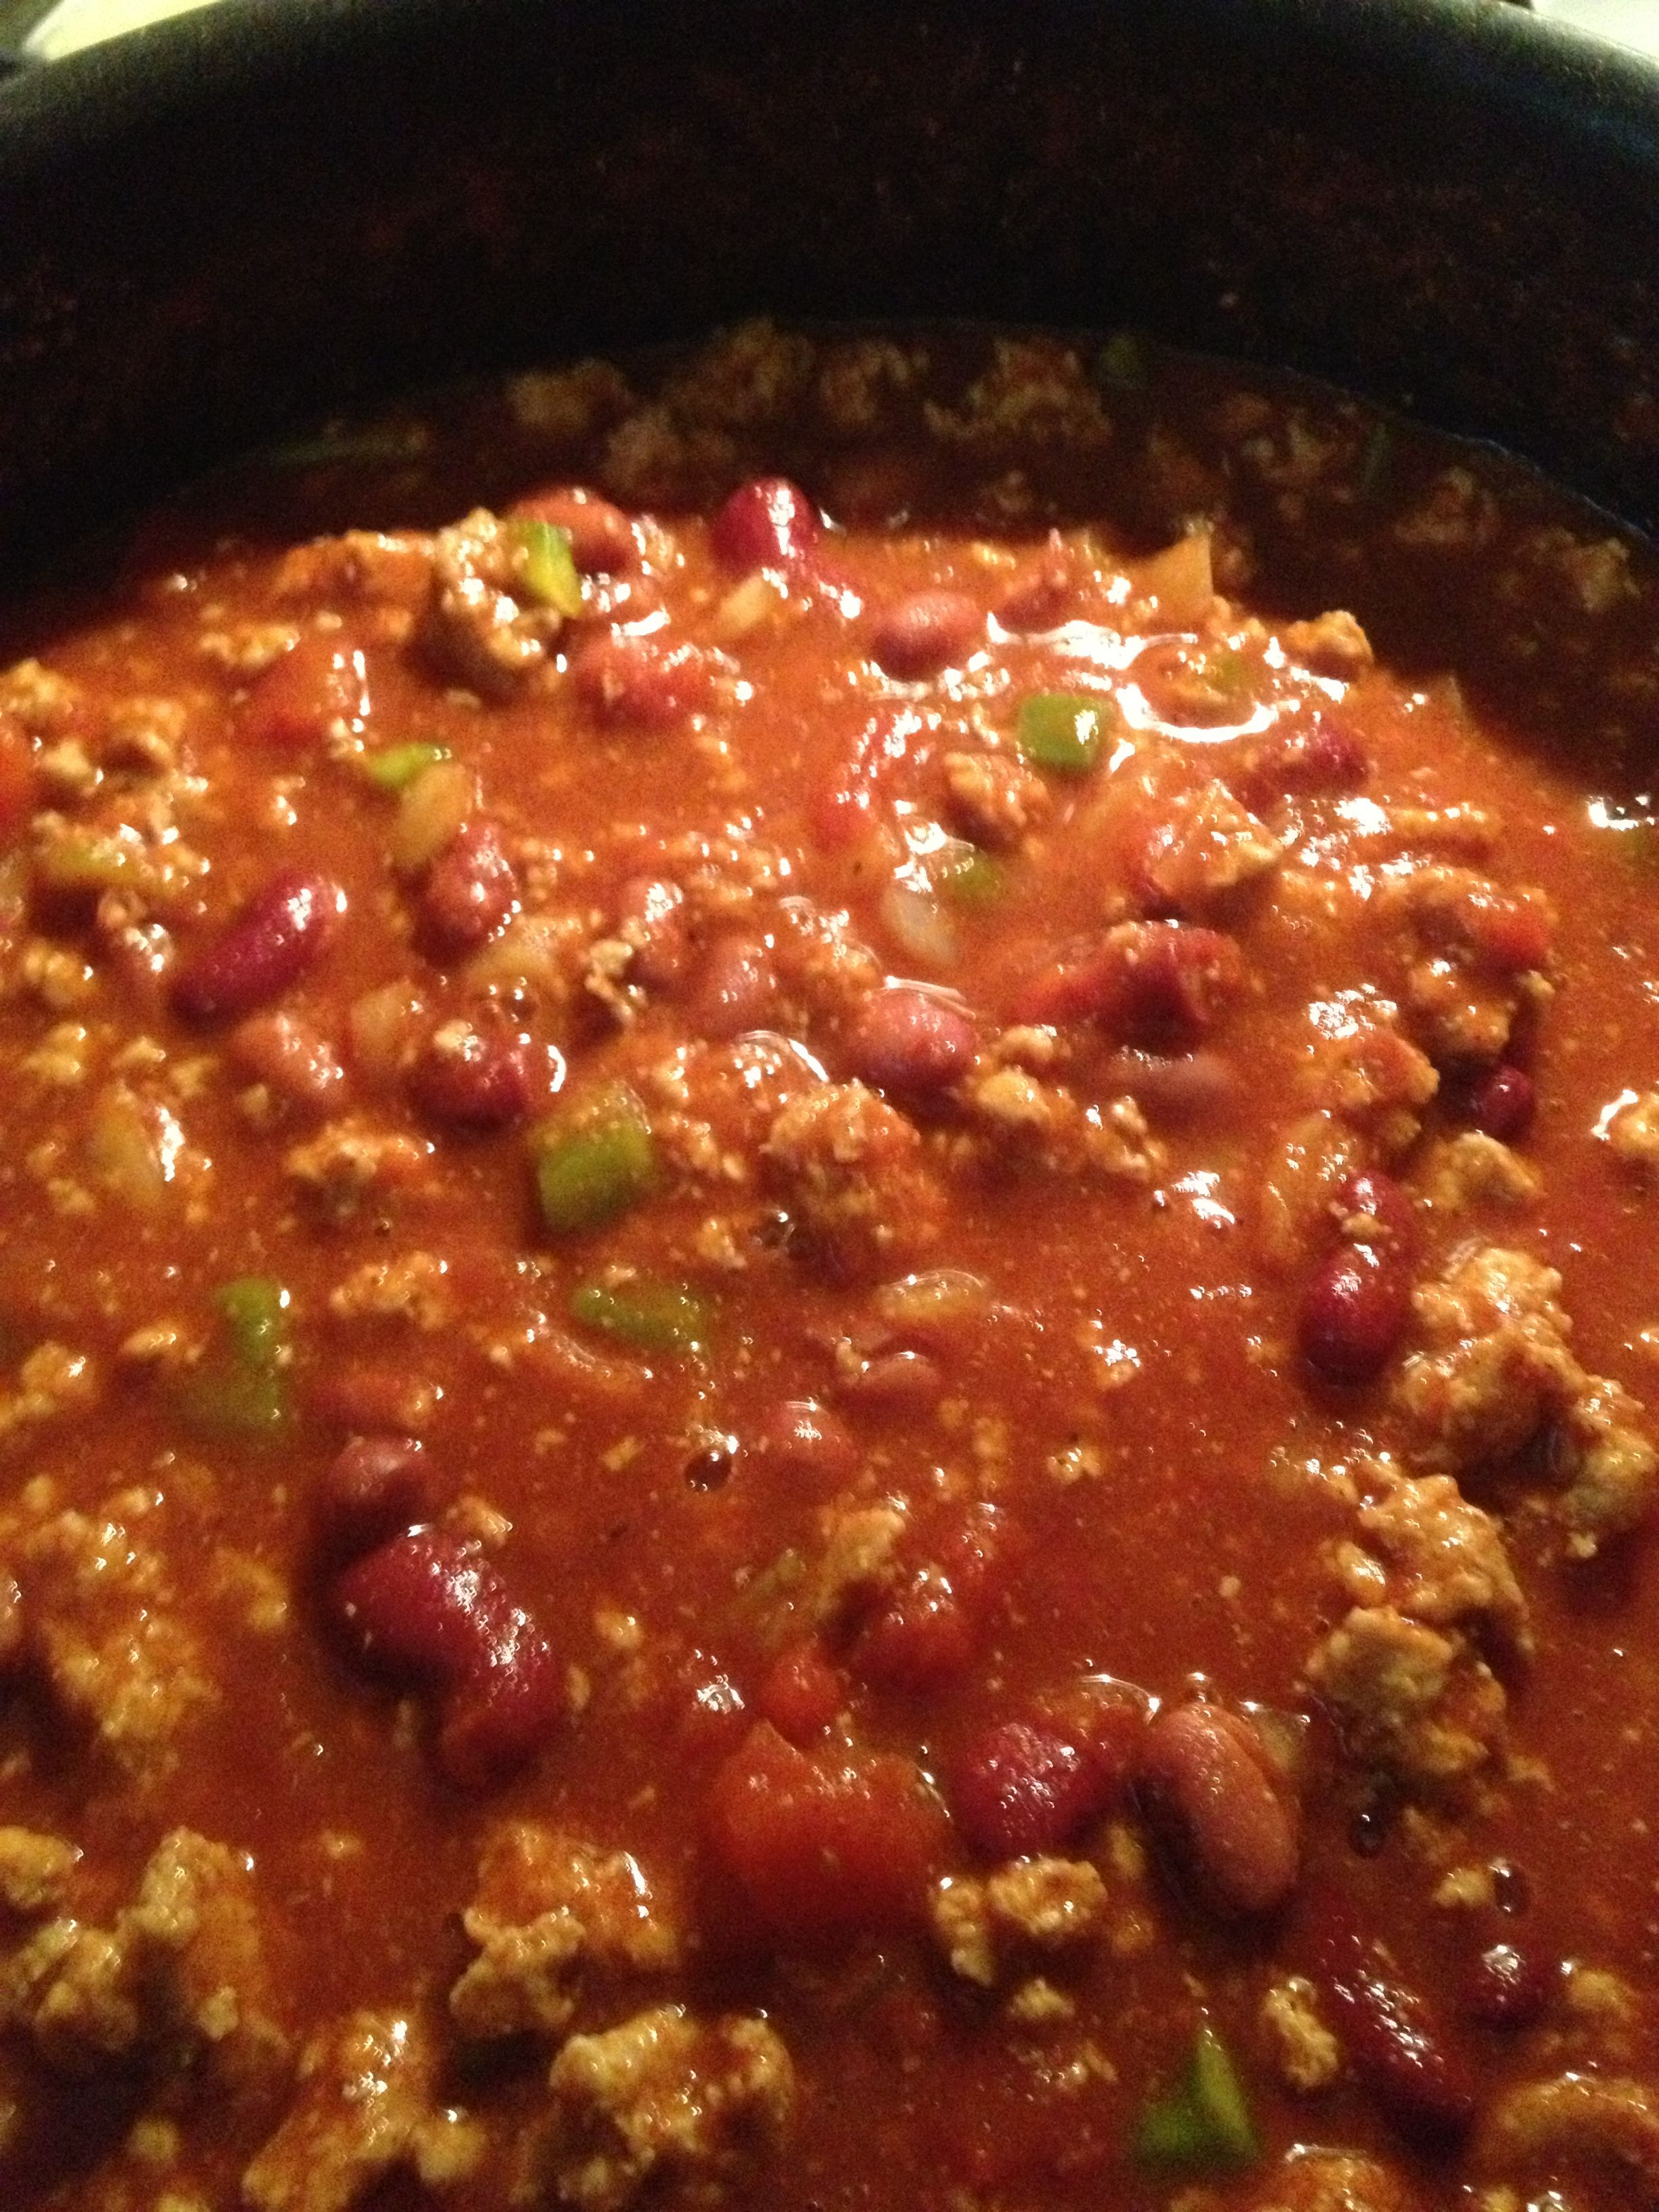 Easy Chili 2lbs Ground Beef Turkey Lg Can Of Tomato Sauce Lg Can Of Diced Tomatoes Green Pepper Onion Jalapeno Chili No Bean Chili Savoury Food Cooking